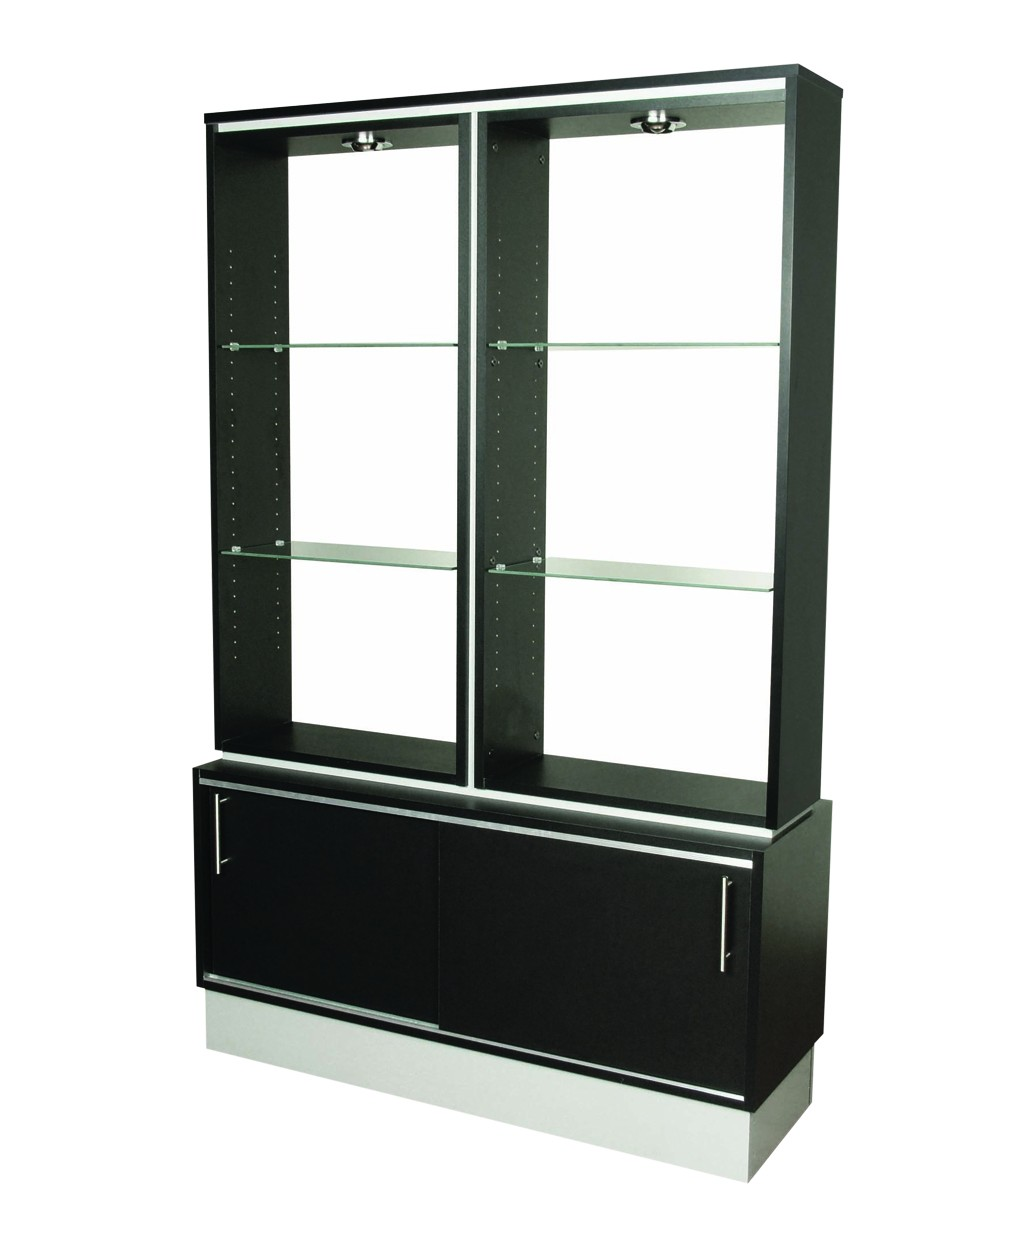 salon retail display shelves waiting room tables accessories neo black floating collins qse unit wrought iron shelf brackets oak fire mantels ikea aluminium back bar glass